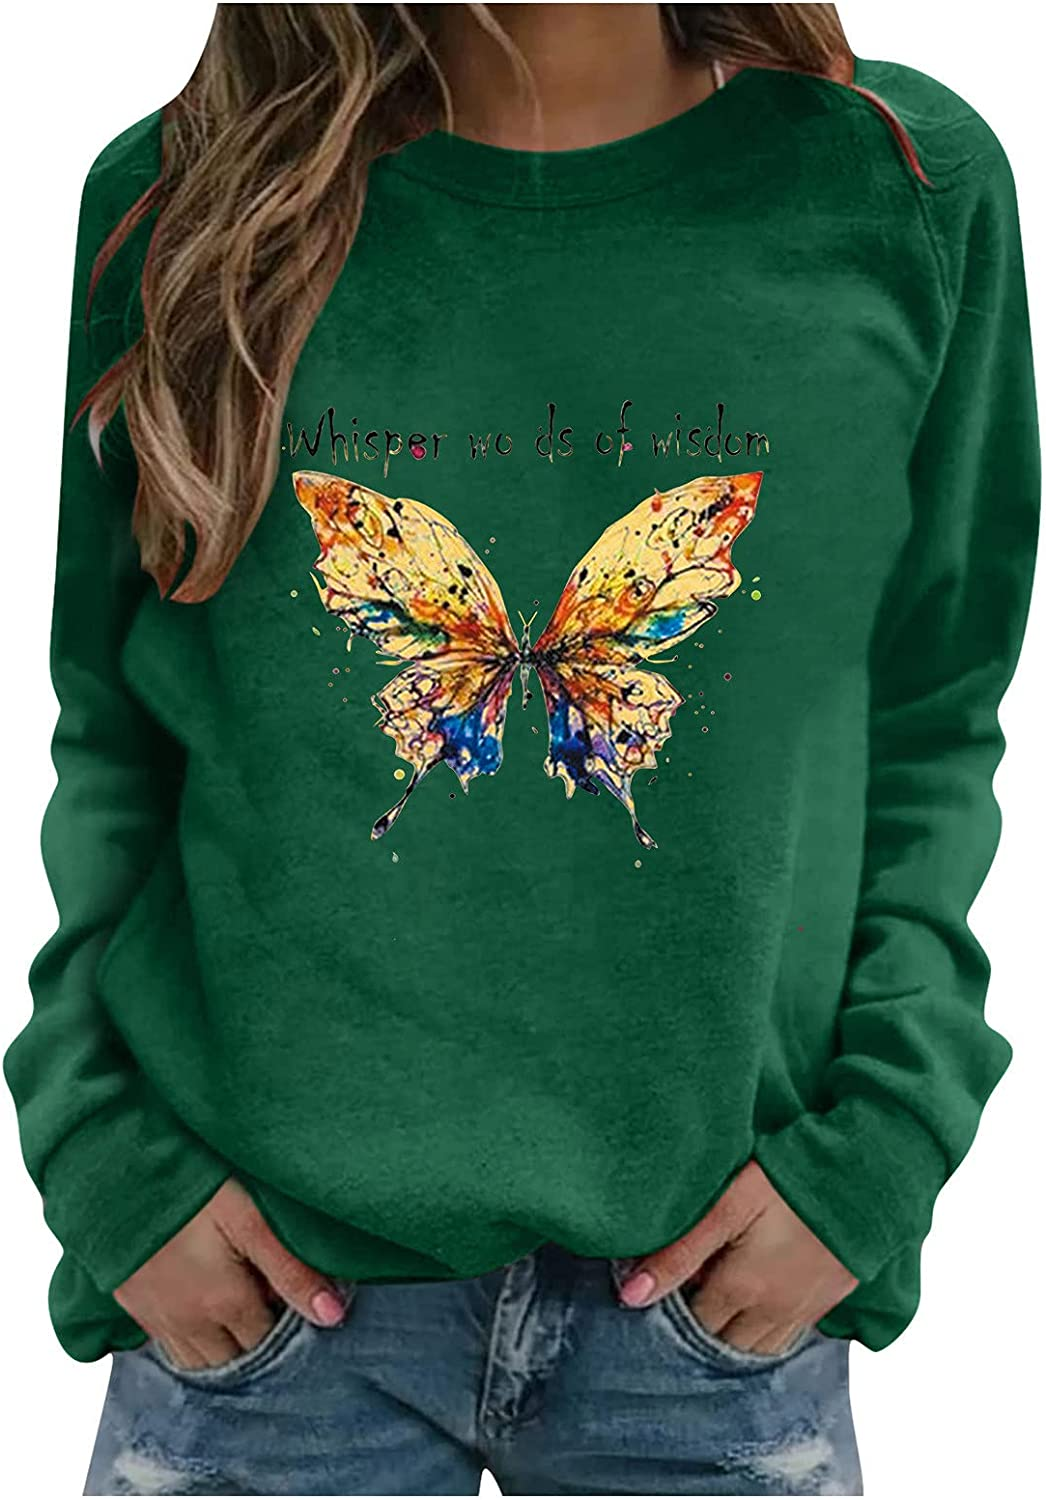 AODONG Womens Tops Comfy Casual T Shirts, Women Casual Long Sleeve Loose Fit Pullover Graphic Blouse Sweatshirt Tops